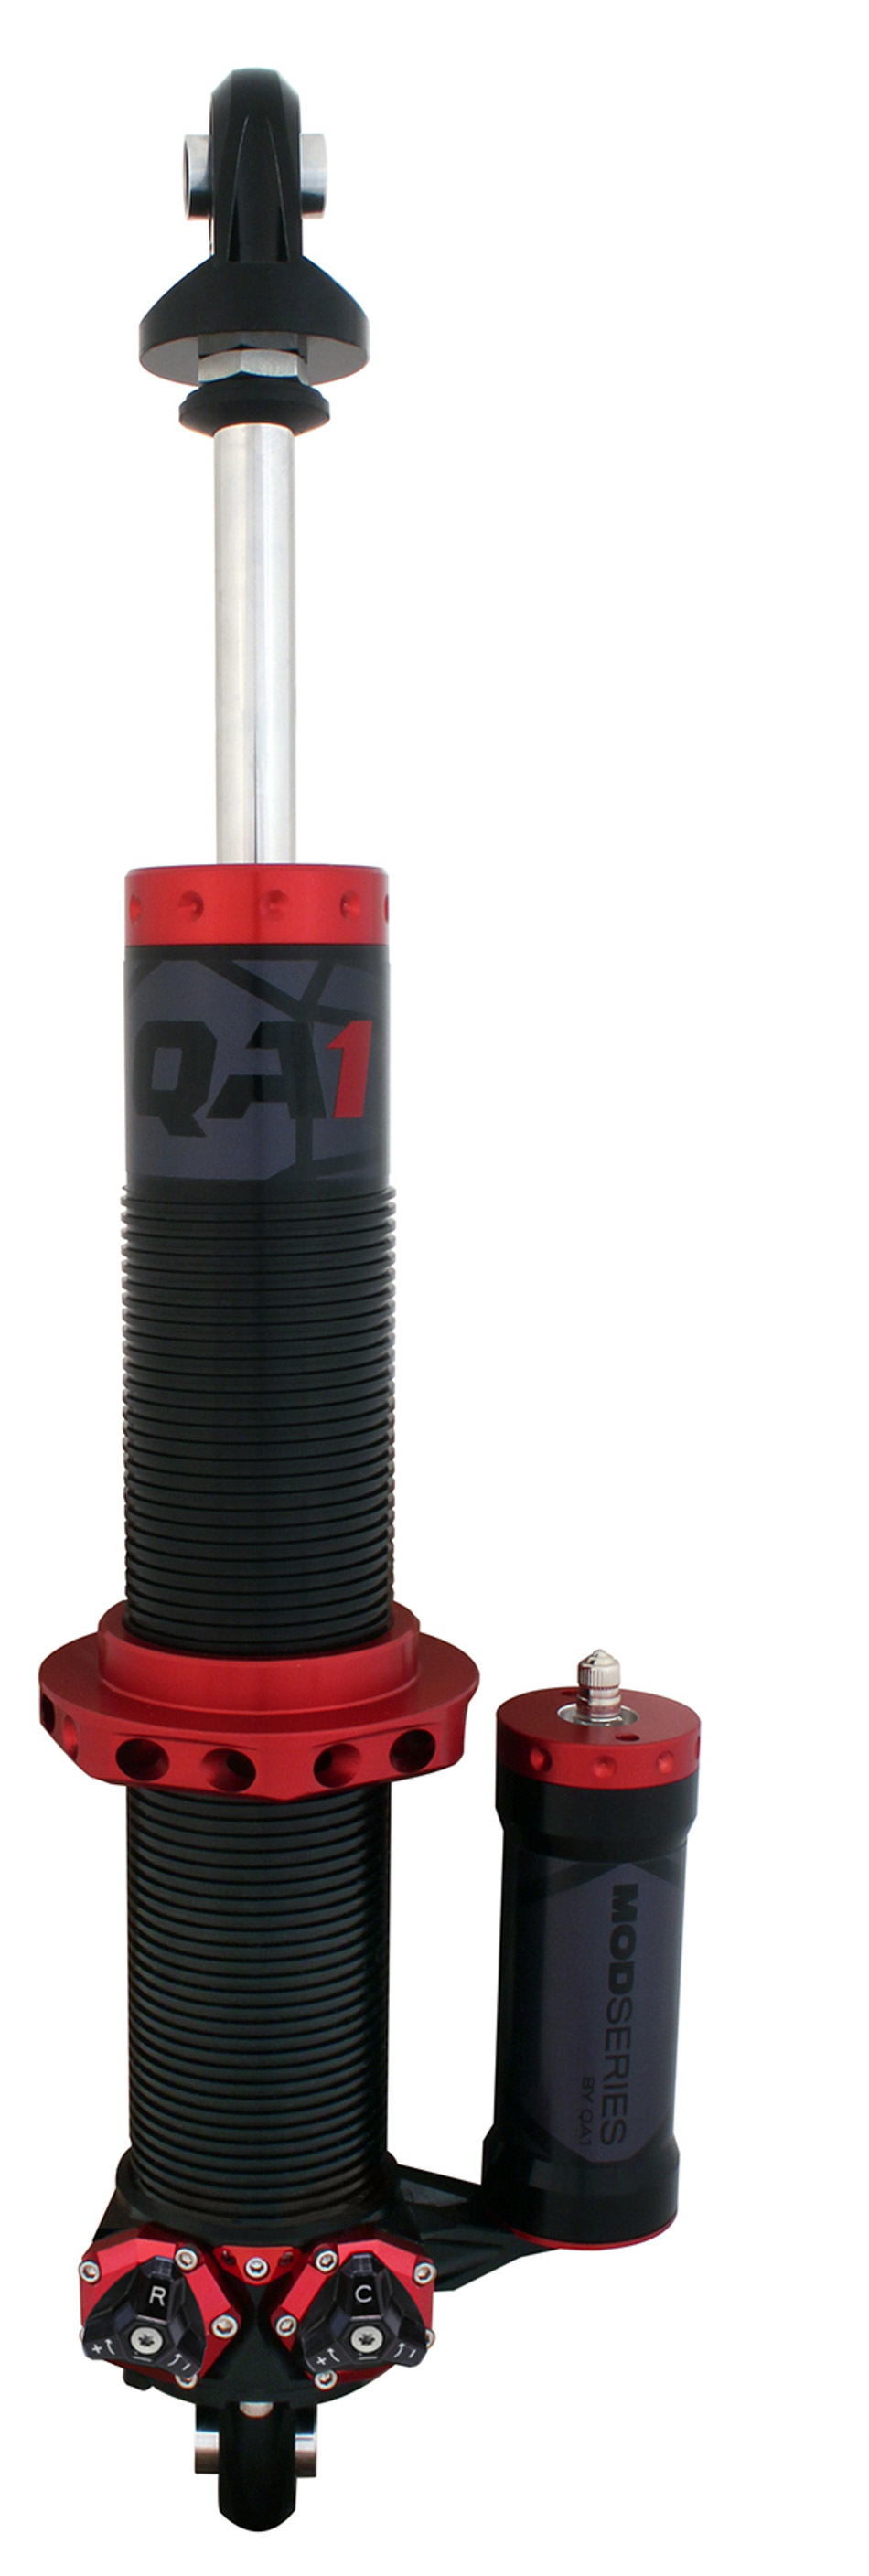 QA1 M411PR Shock, Mod Series, Twintube, 10.13 in Compressed / 14.00 in Extended, 2.00 in OD, Double Adjustable, Aluminum, Black Anodize, Each